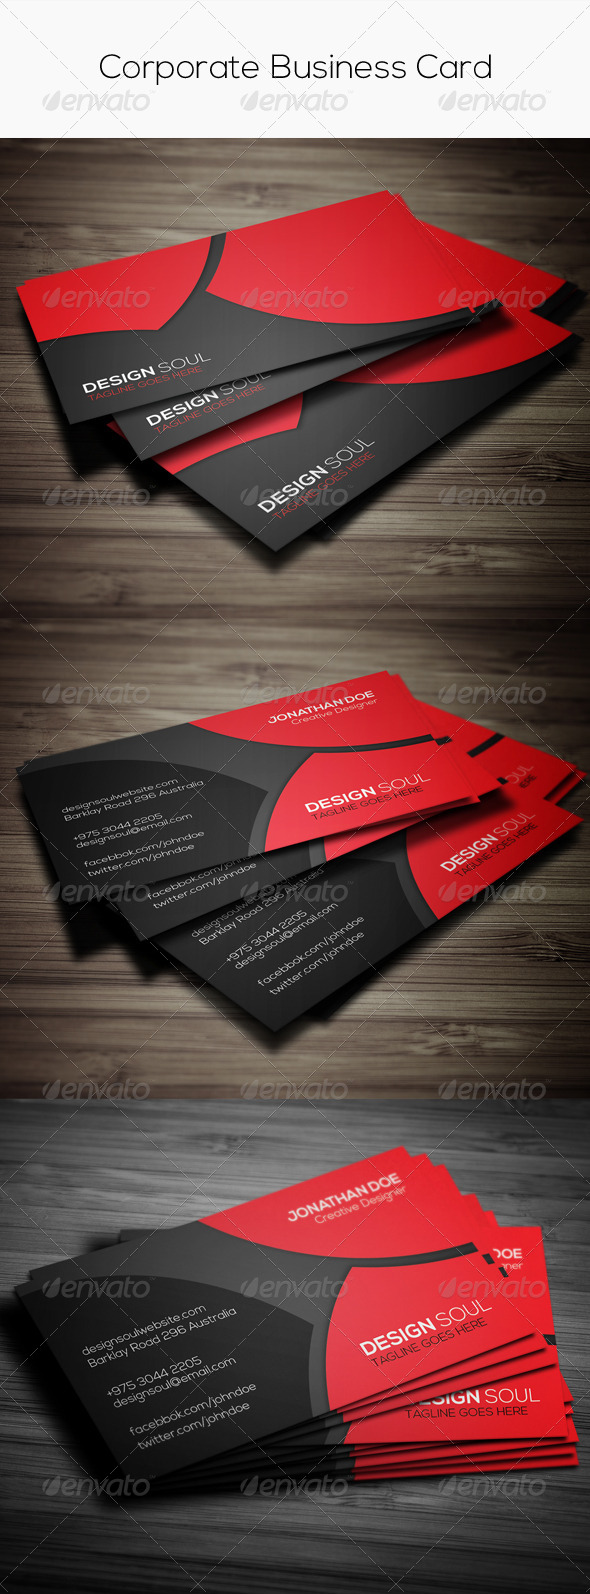 GraphicRiver Corporate Business Card 7731862